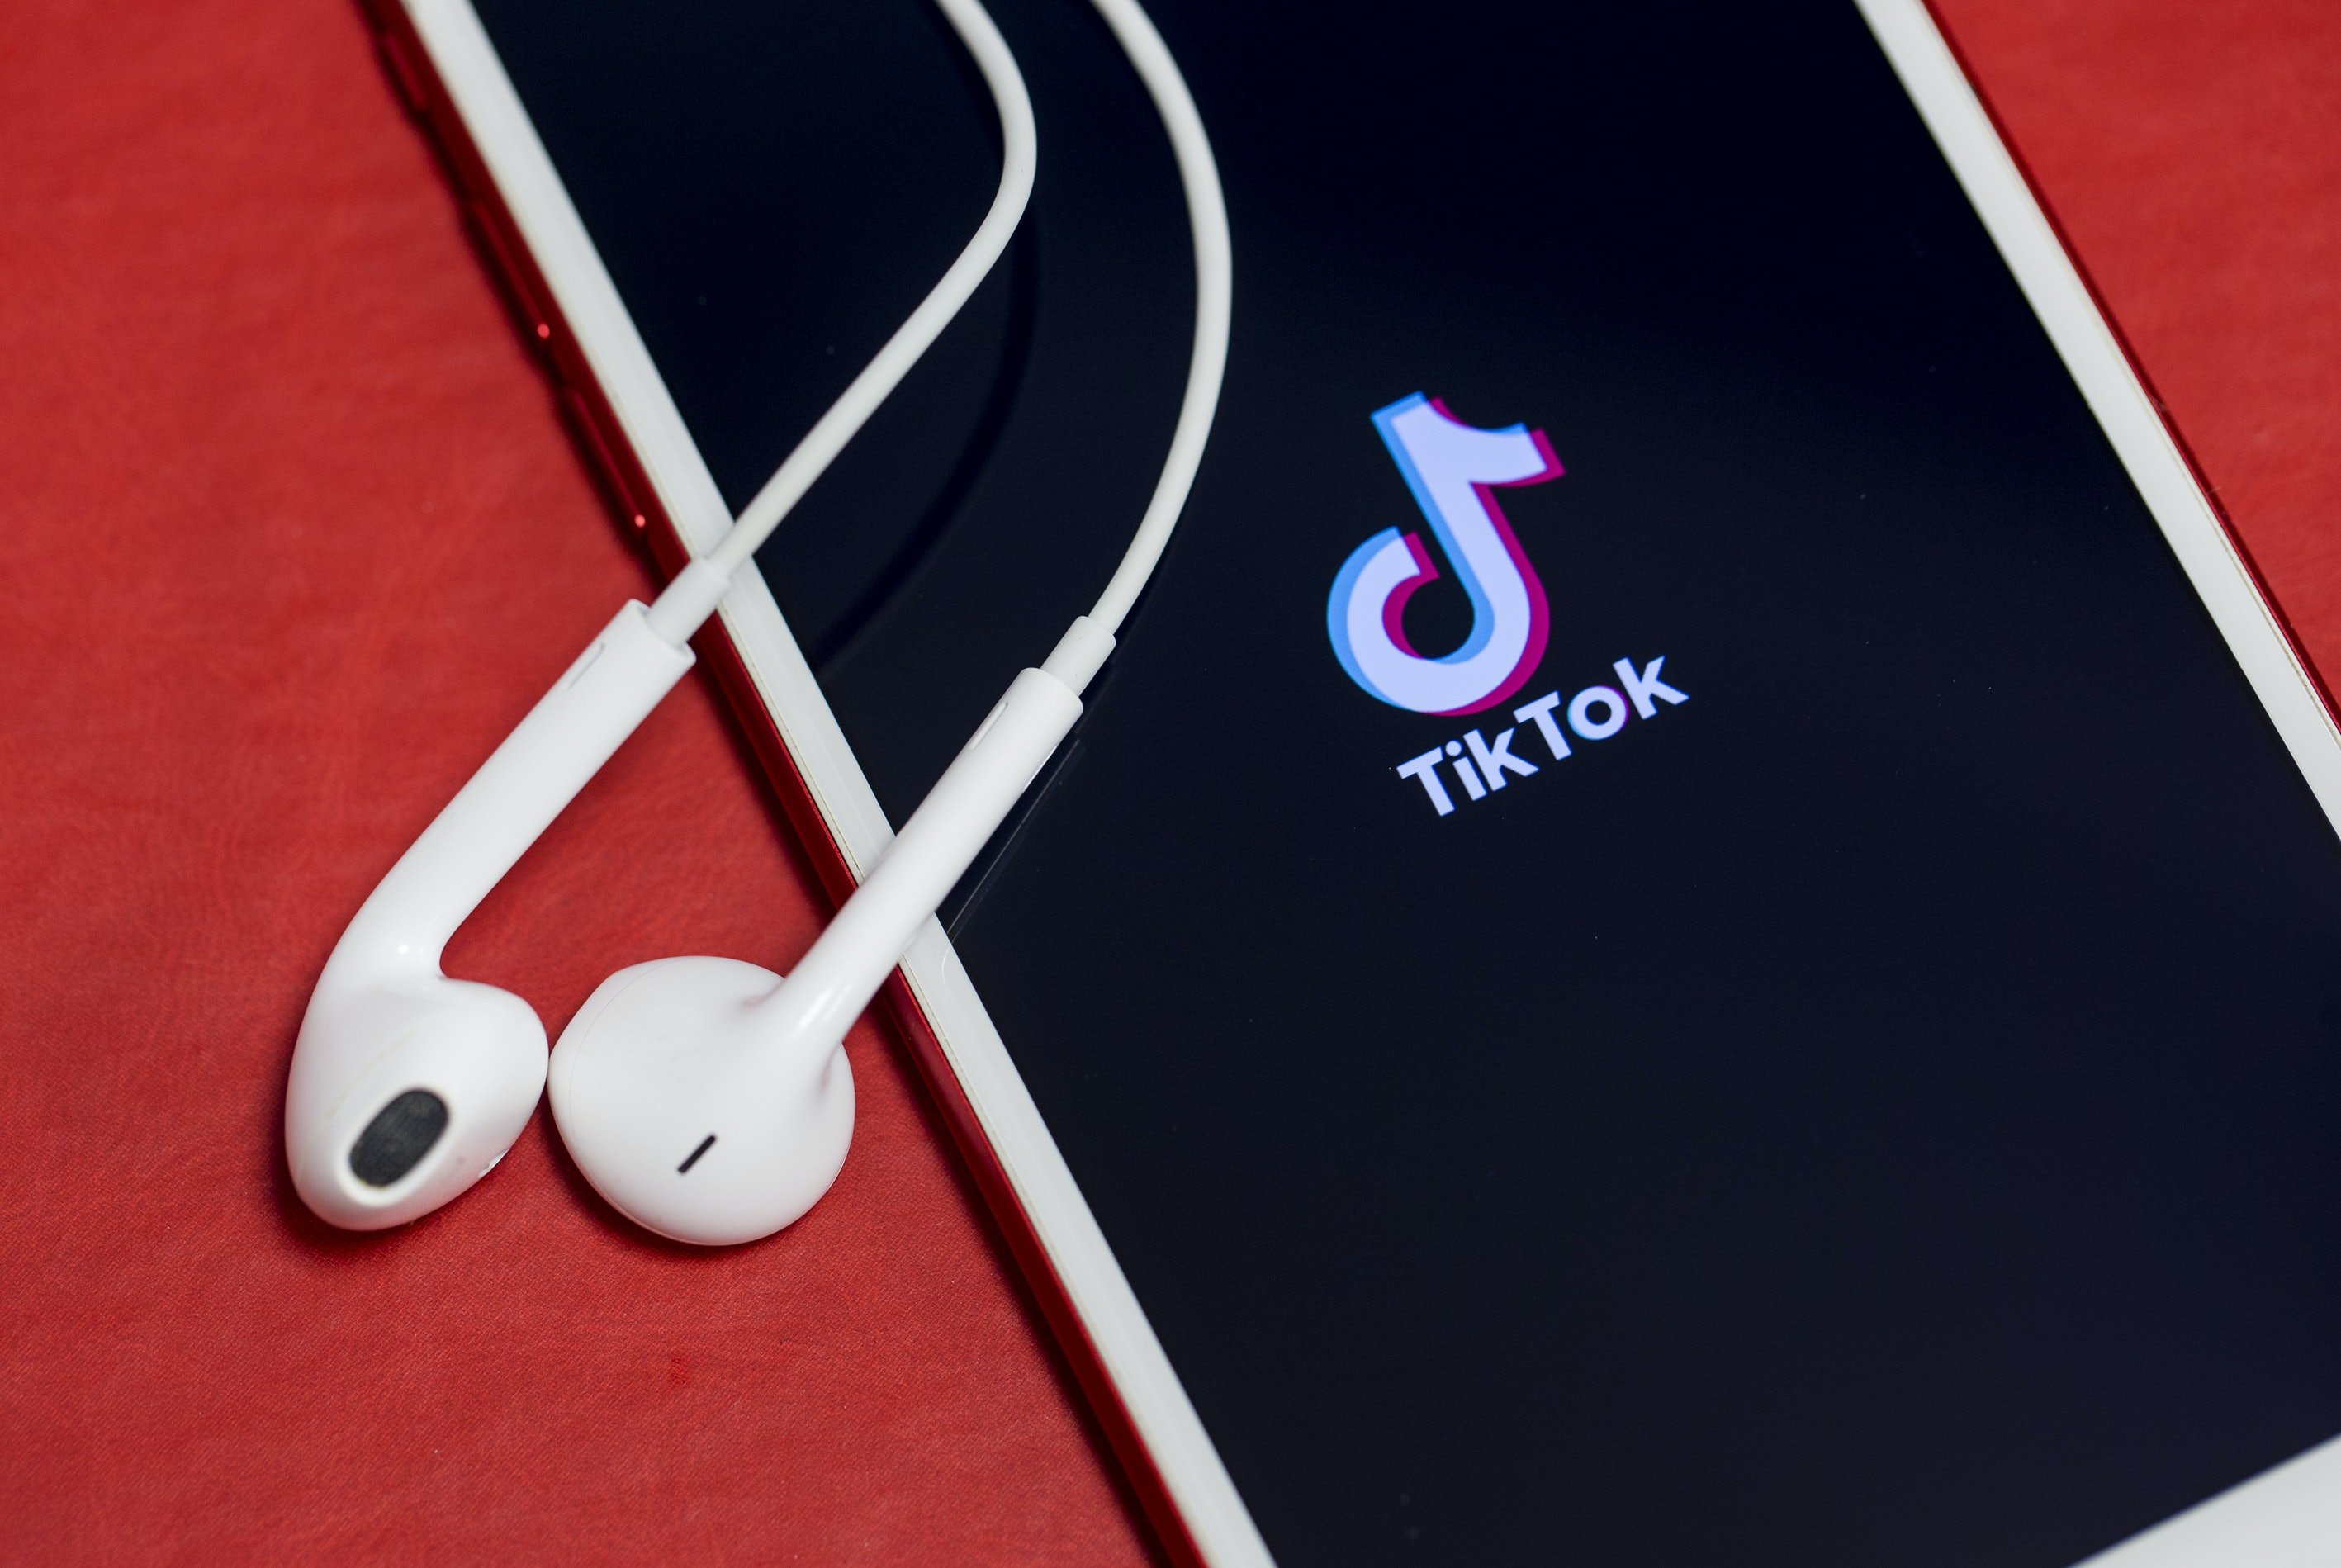 Here S How To Use Interactive Tiktok Filters To Get In On All The Action